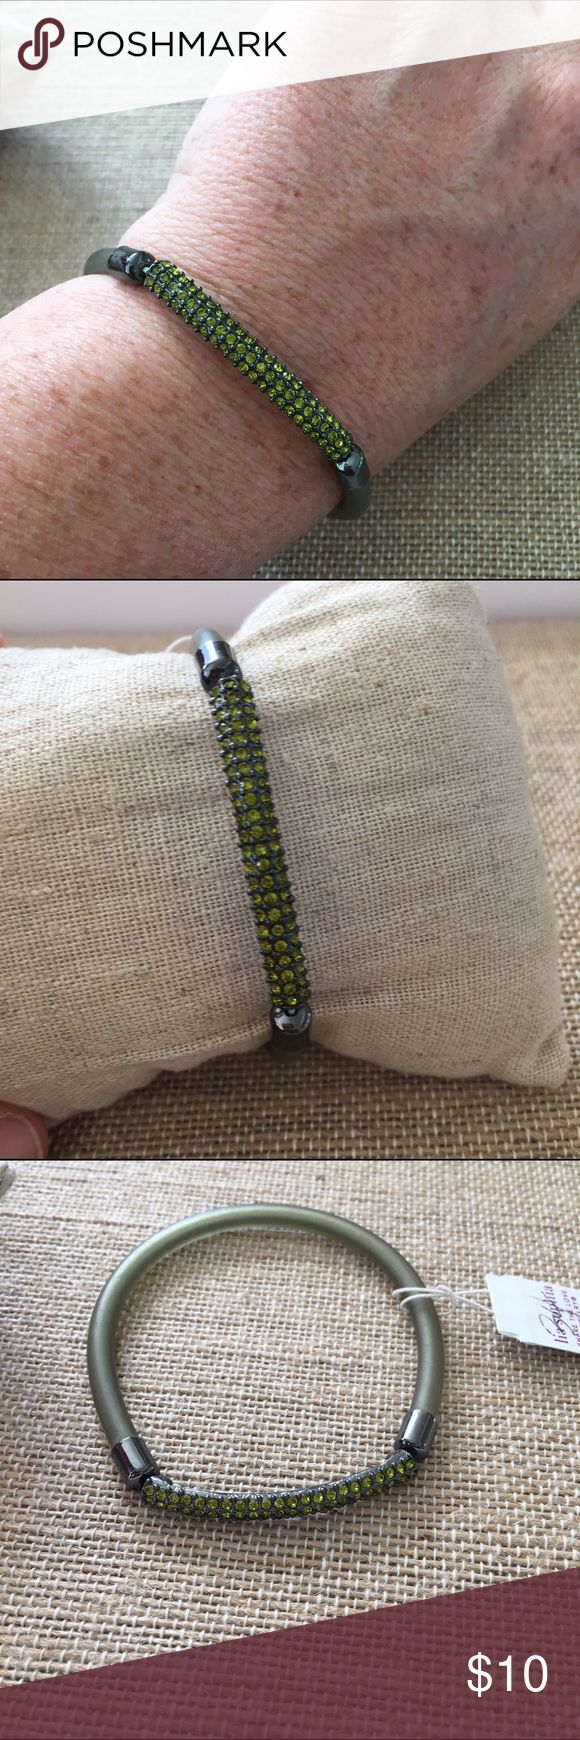 Lia sophia Birthday party bracelet- Olive Stretchy bracelet with green cut crystals in the front and a jelly type material in the back. Olive green. Does not come in a lia sophia box. Lia Sophia Jewelry Bracelets